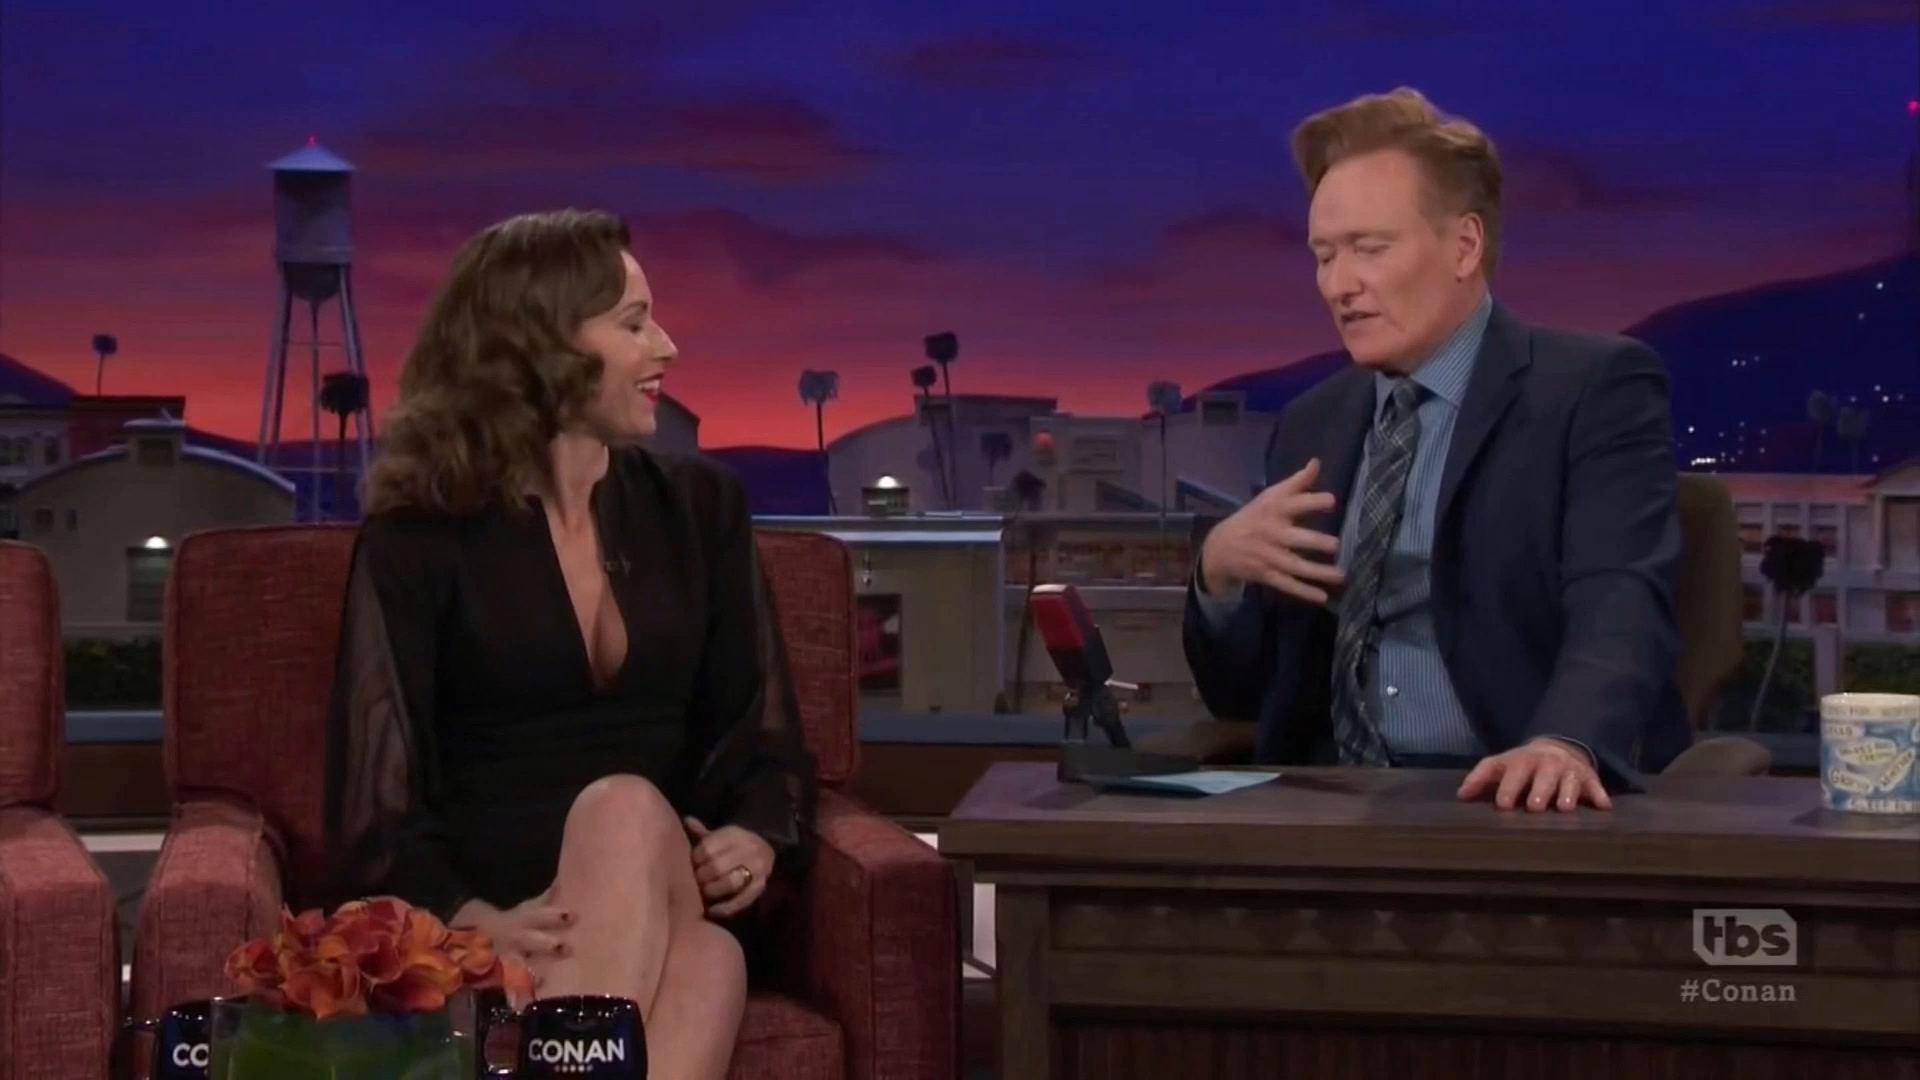 69850366_minnie-driver-conan-o-brien-show-12-03-2018-19x-caps-_13.jpg